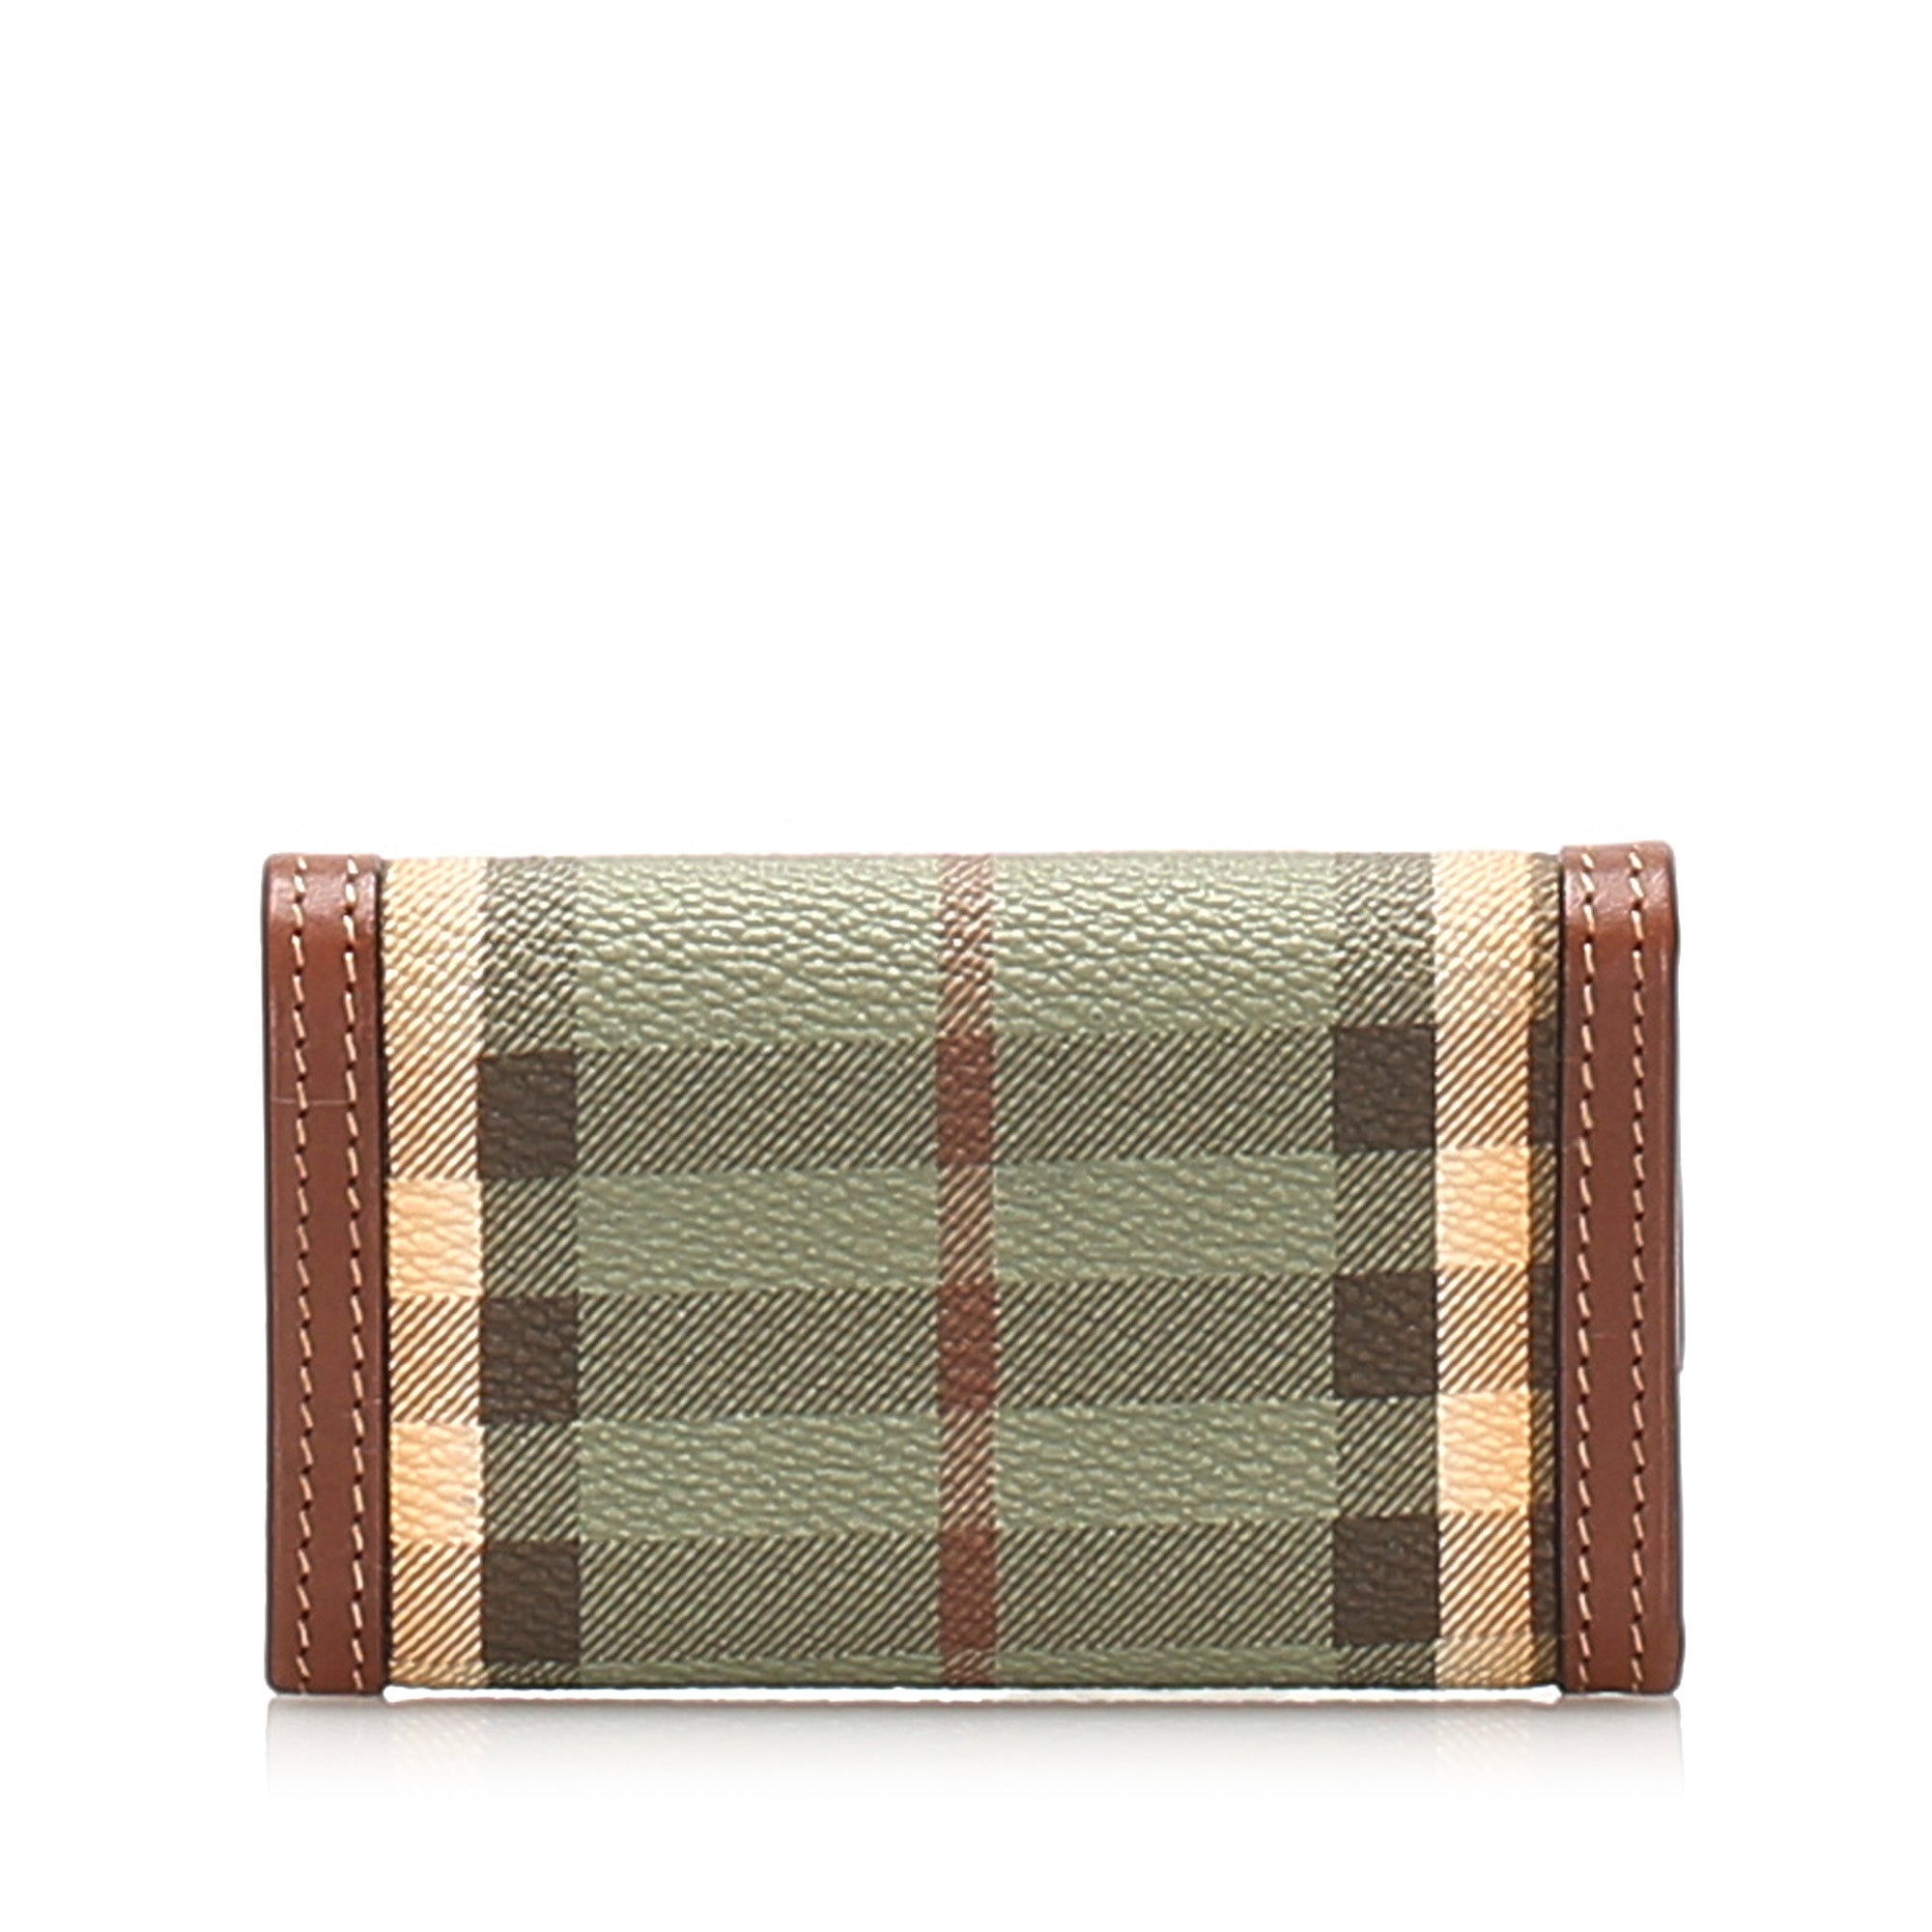 Burberry Blue Haymarket Check Coated Canvas Key Holder